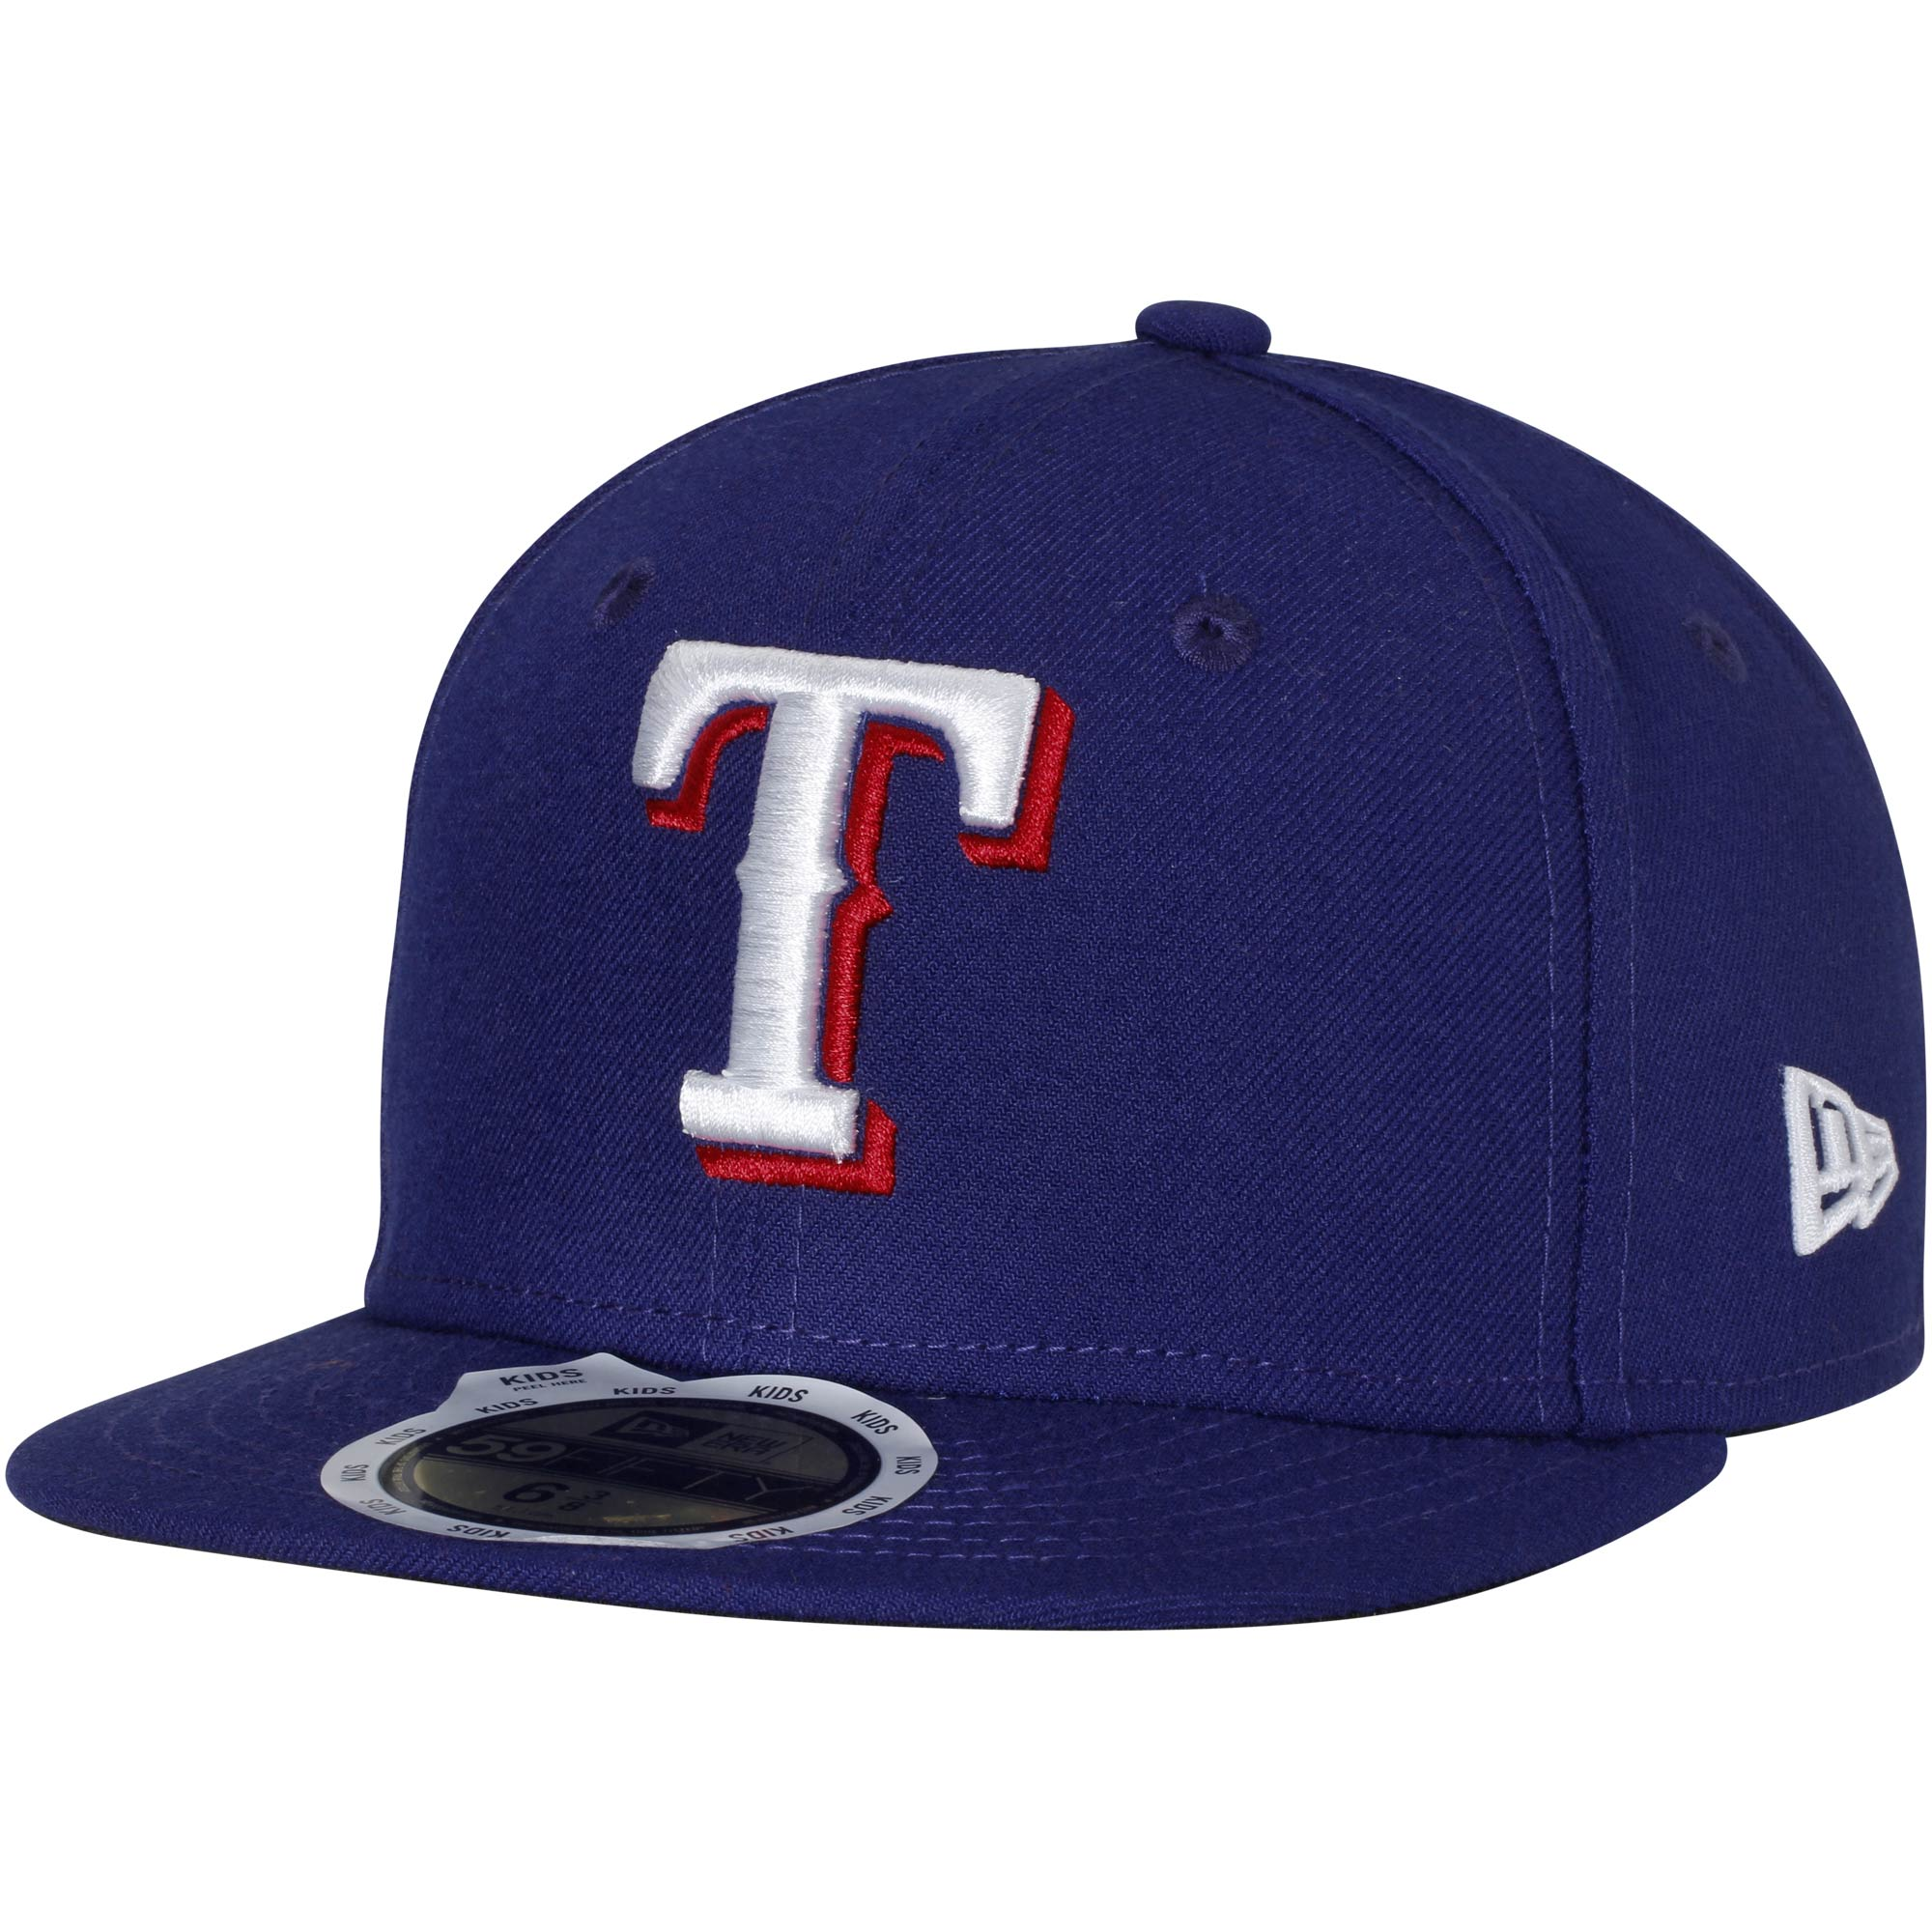 Texas Rangers New Era Youth Authentic Collection On-Field Game 59FIFTY Fitted Hat - Royal